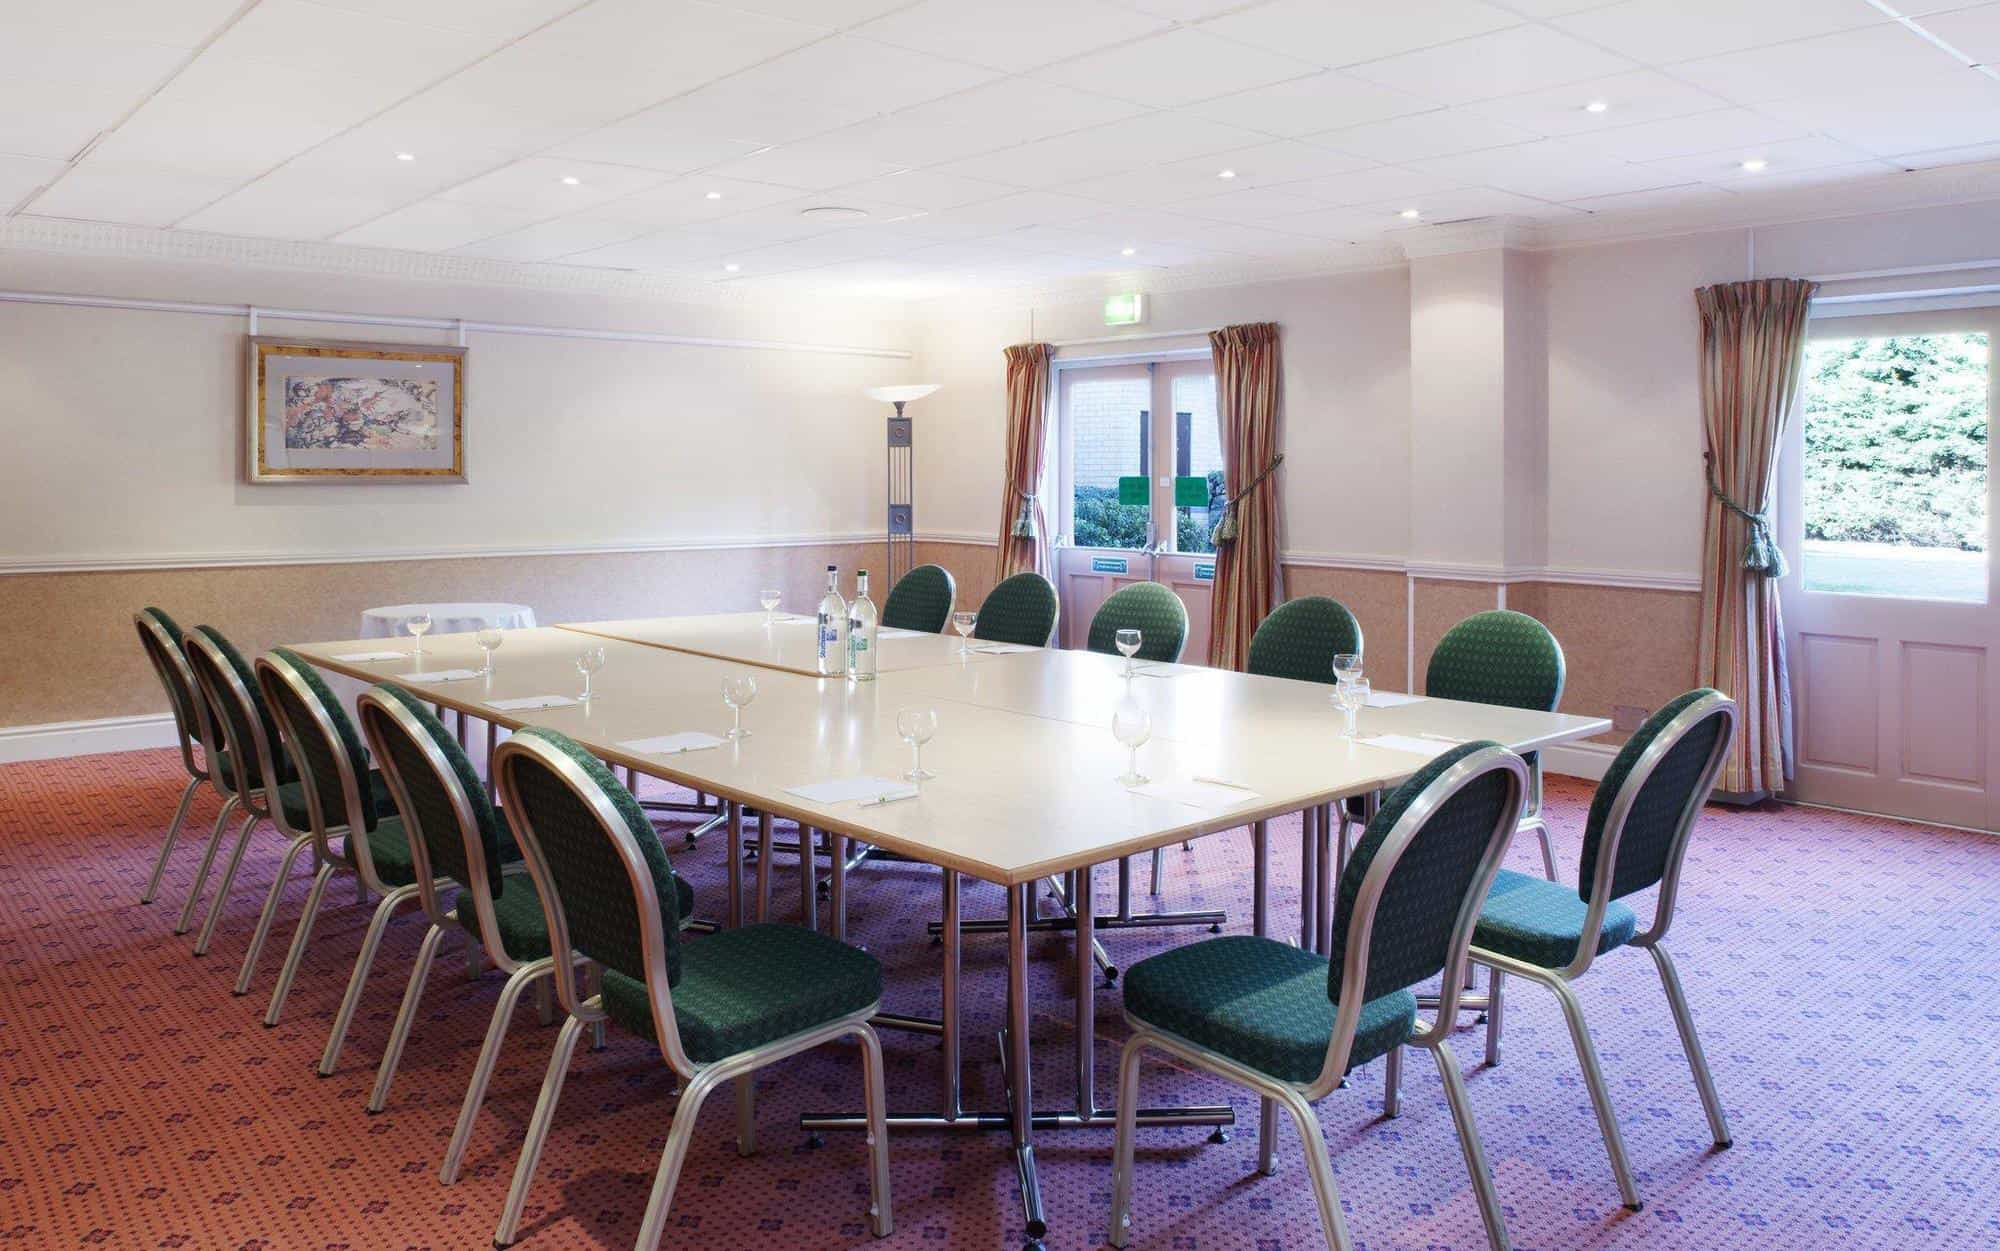 Meeting room in boardroom configuration at Citrus Coventry Hotel